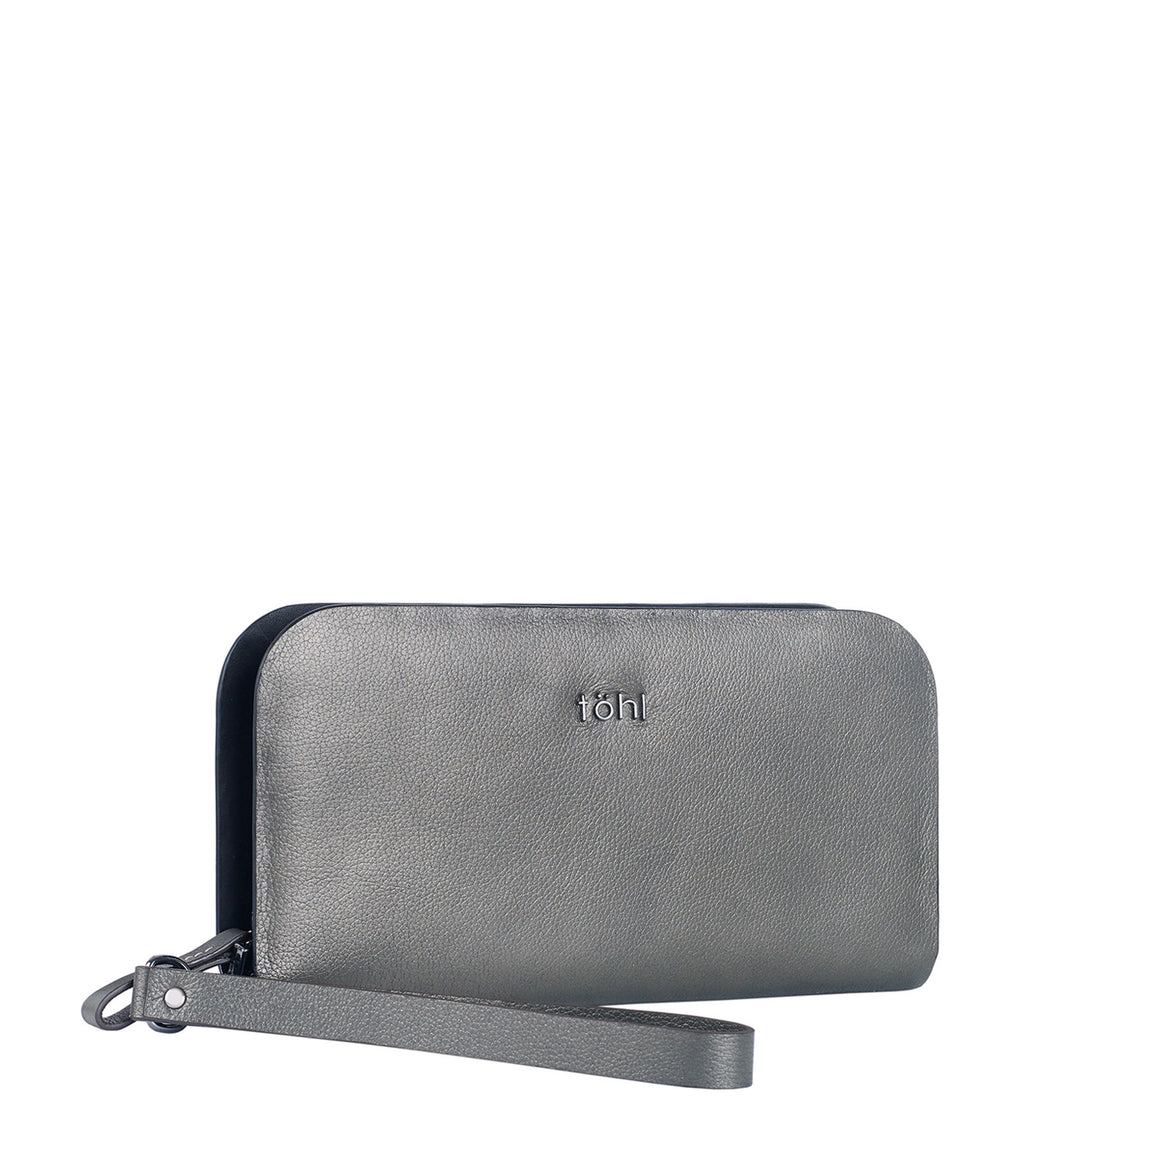 WT 0002 - TOHL DELANCEY WOMEN'S CLUTCH WALLET - METALLIC SMOKE